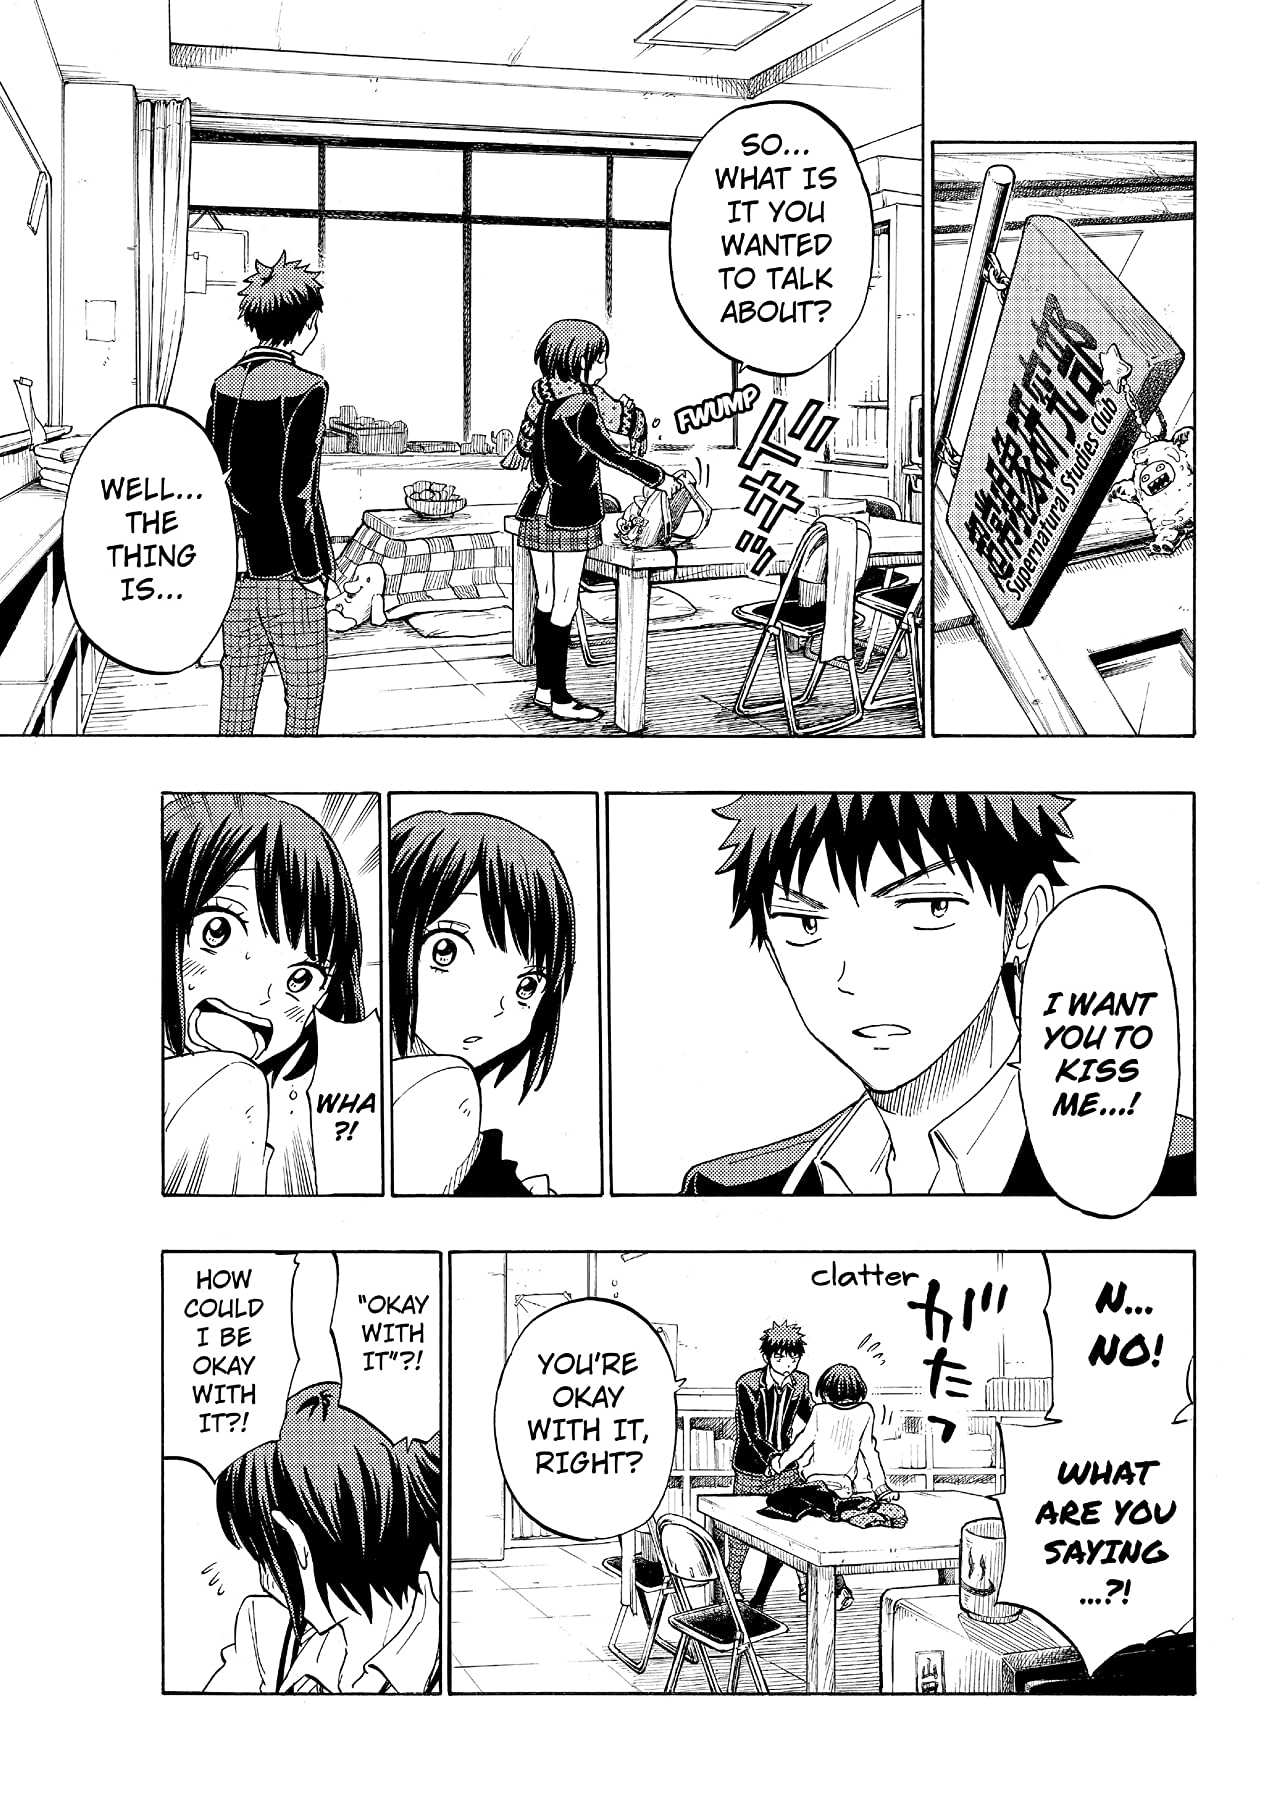 Yamada-kun and the Seven Witches #128